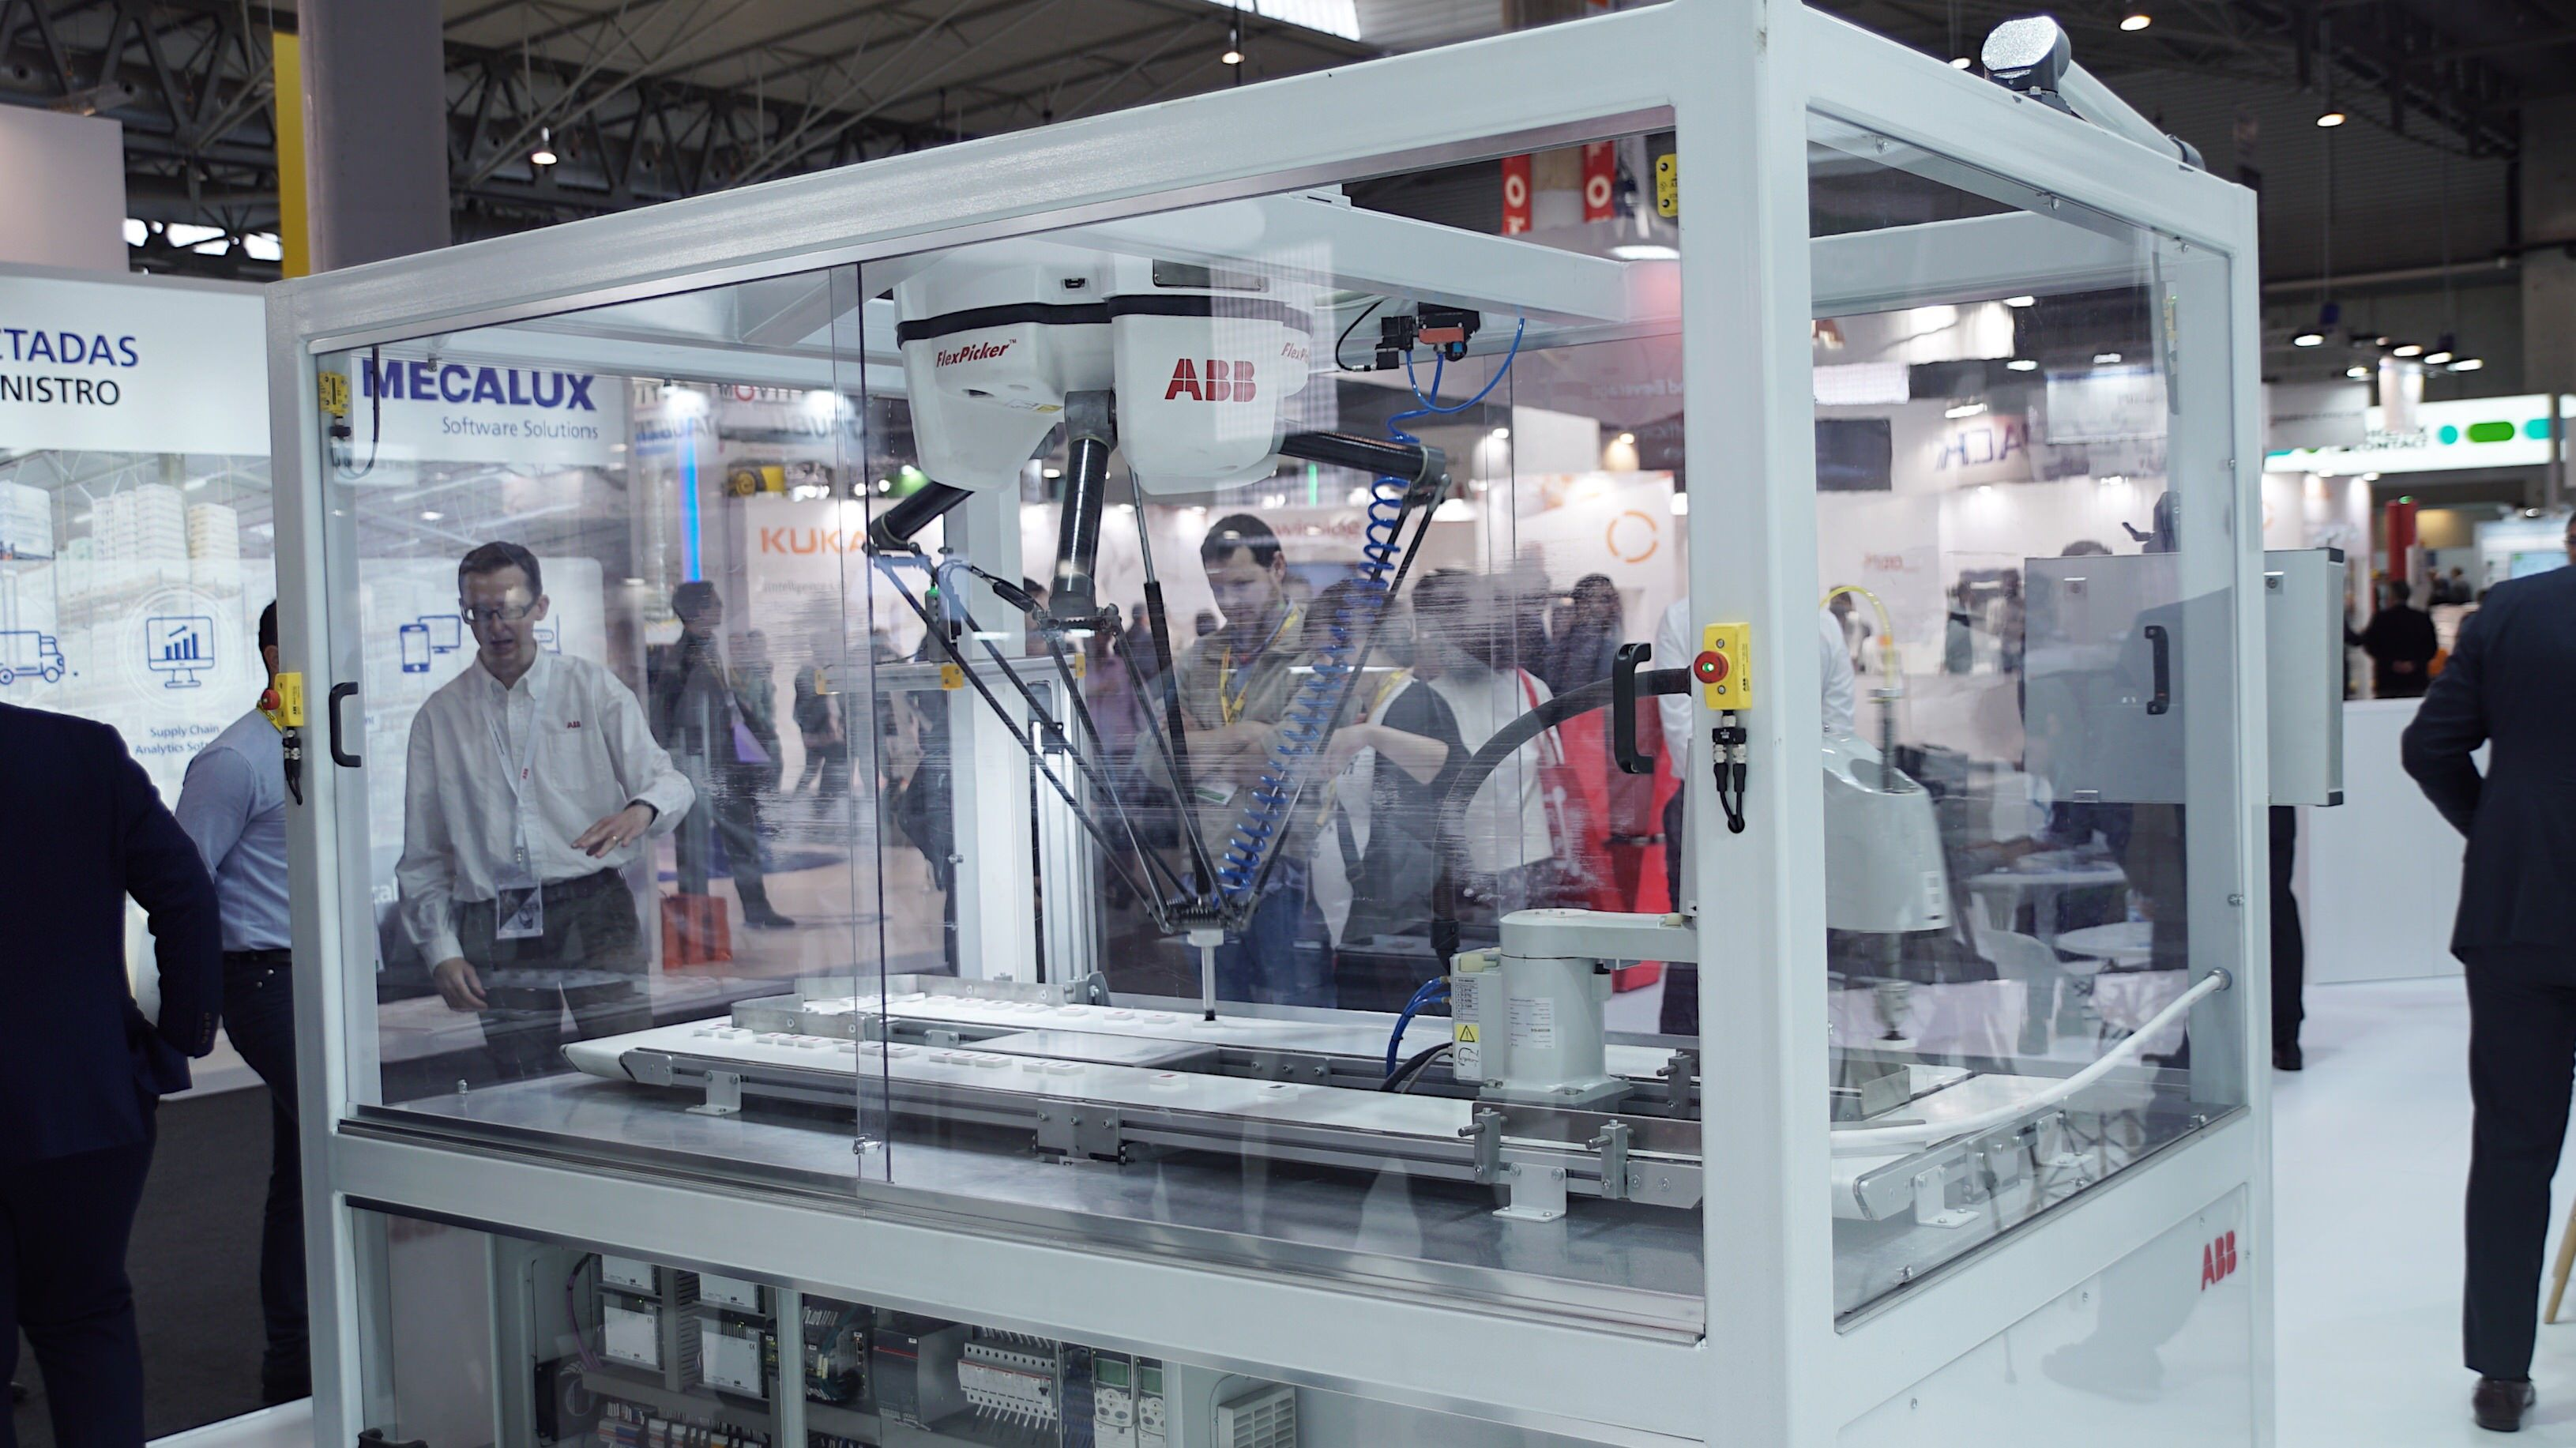 Fotografia IRB 360 FlexPickerTM by ABB Robotics